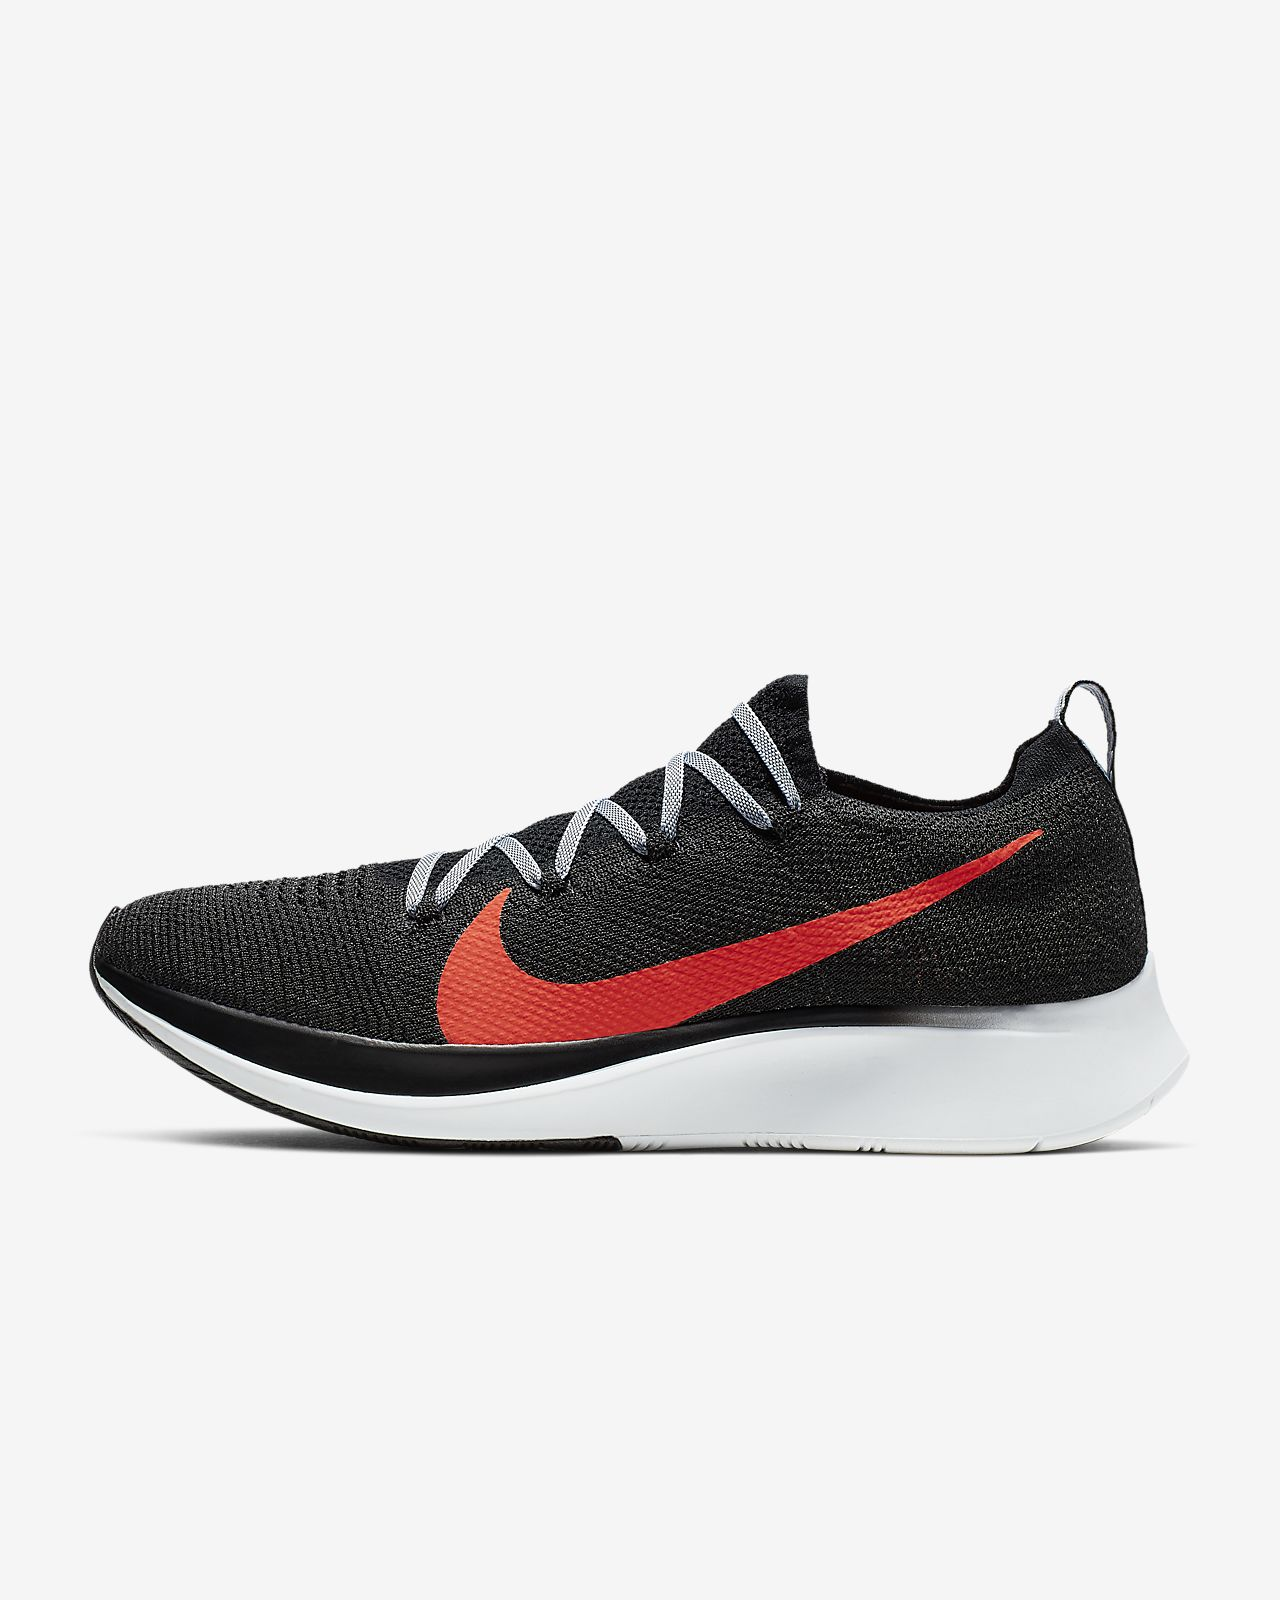 c116699209 Nike Zoom Fly Flyknit Men's Running Shoe. Nike.com